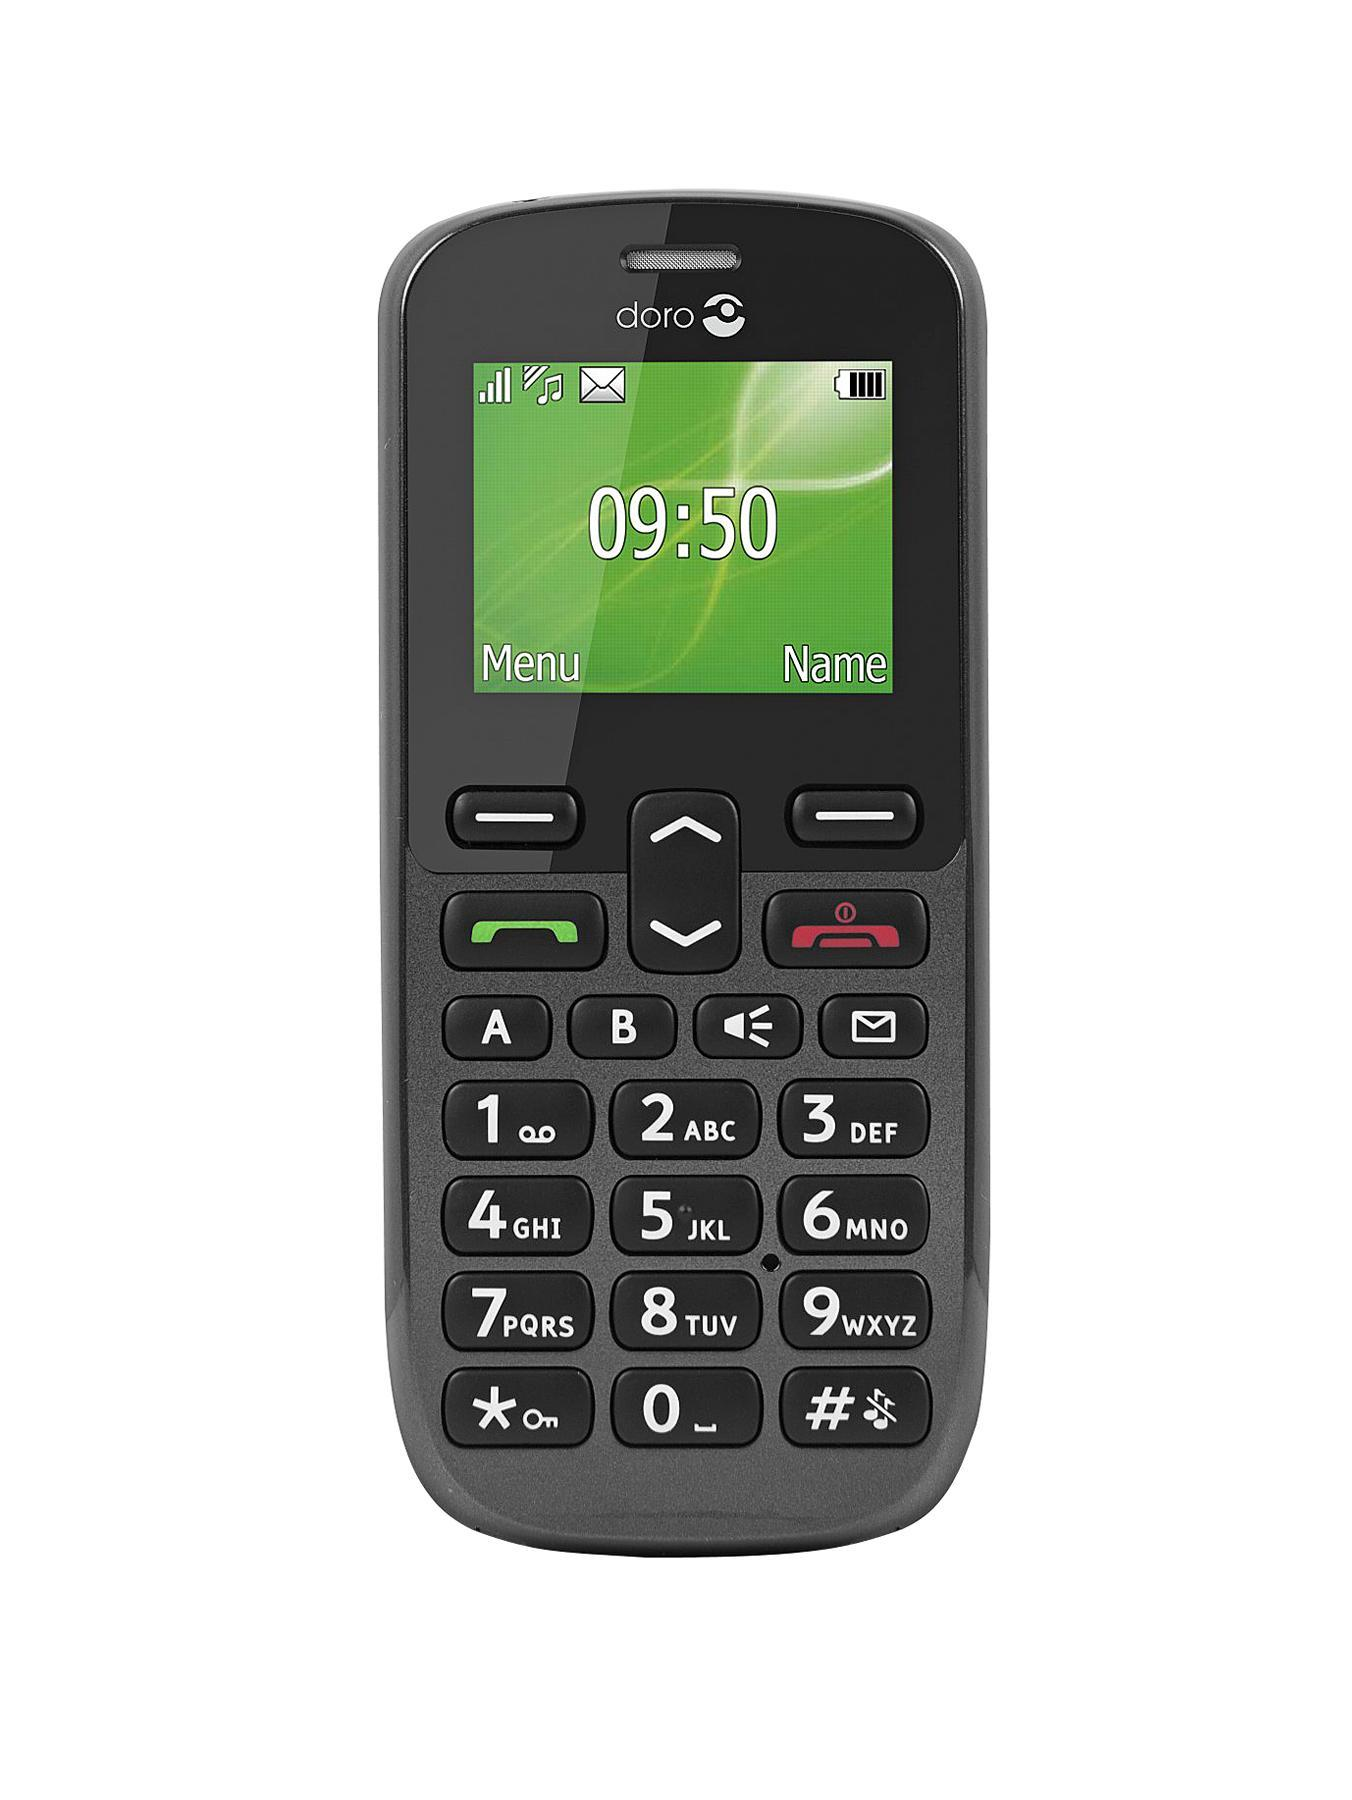 Doro PhoneEasy 508 Mobile Phone - Black